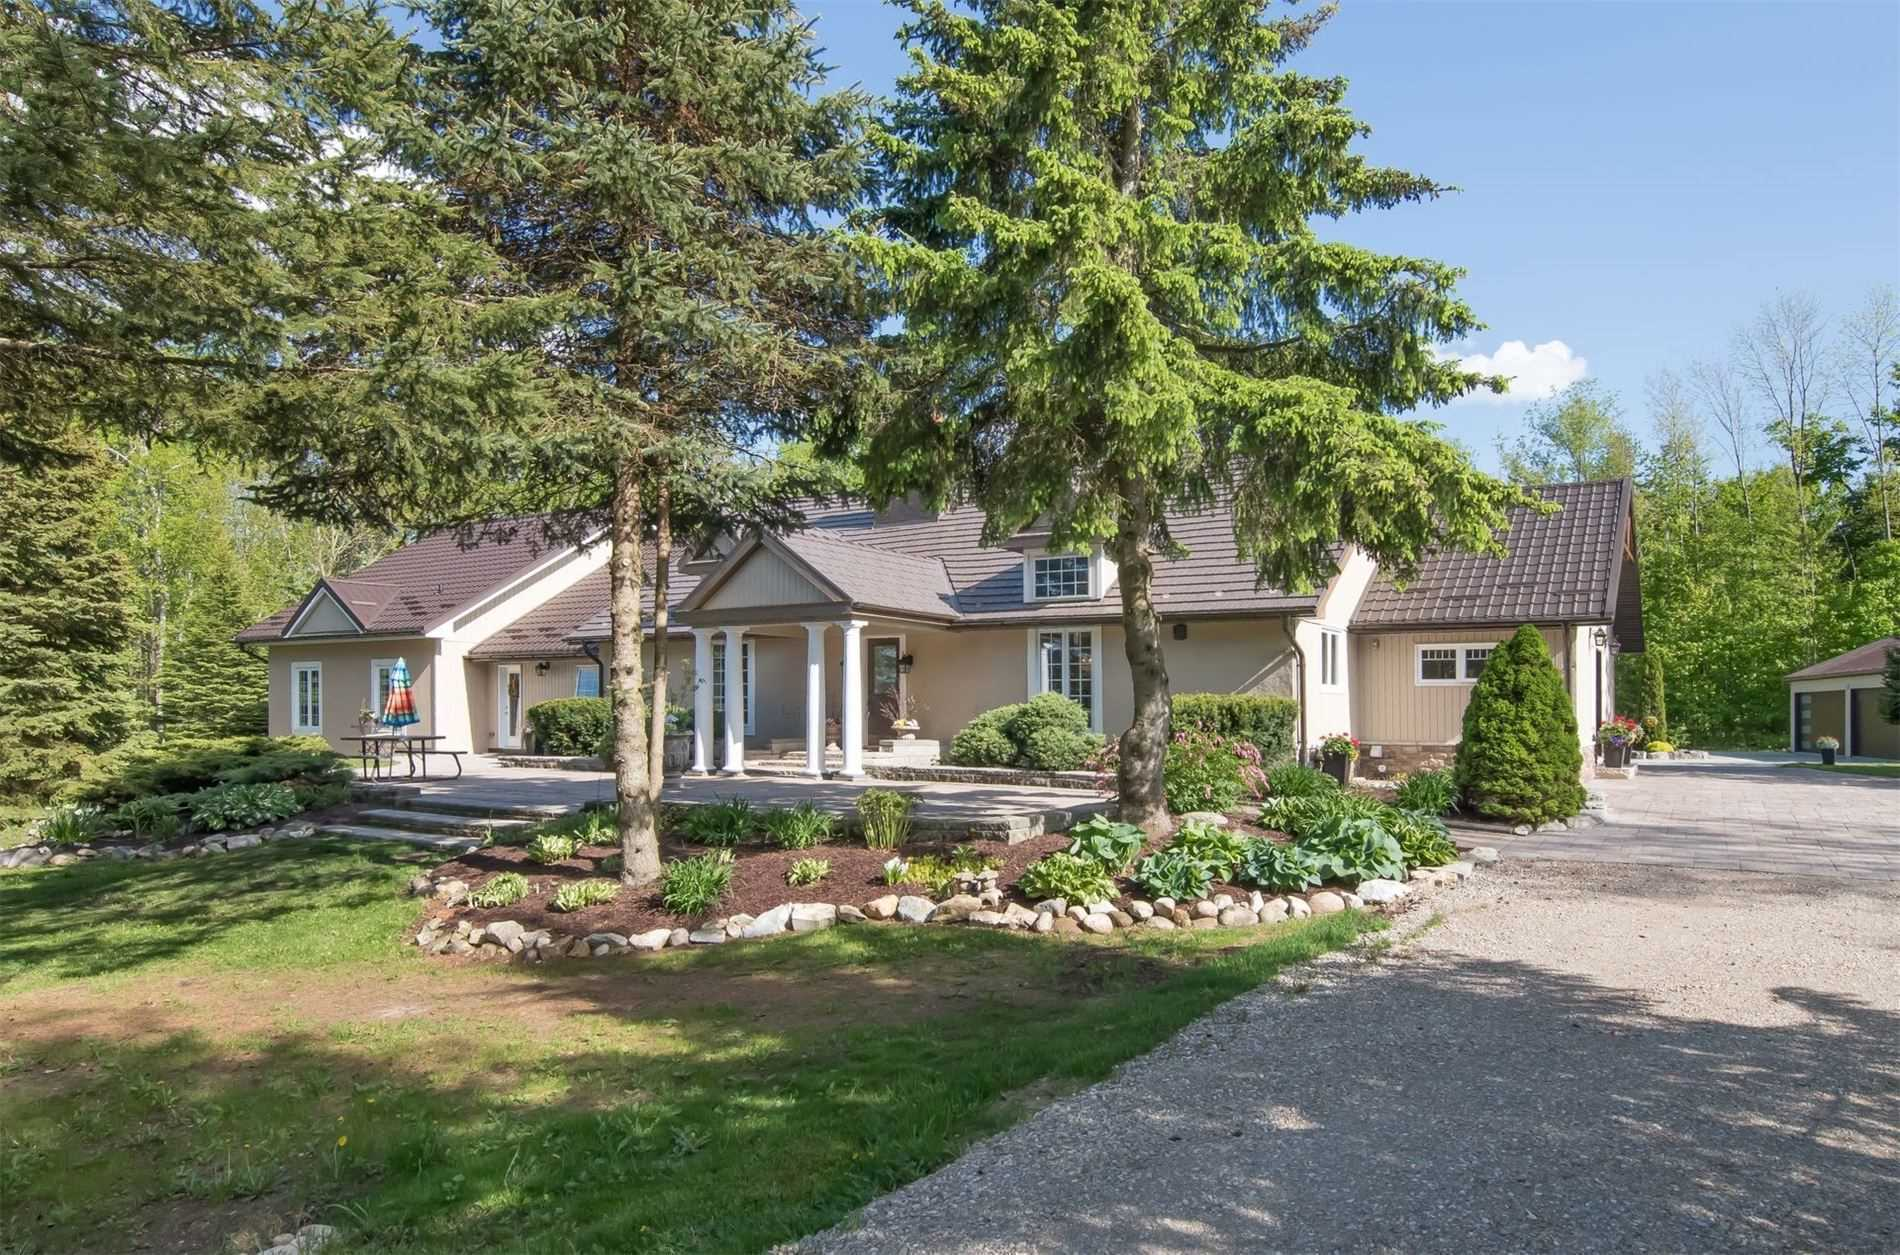 pictures of house for sale MLS: X4645536 located at 096182 4th Line S W, Melancthon L9V2B9